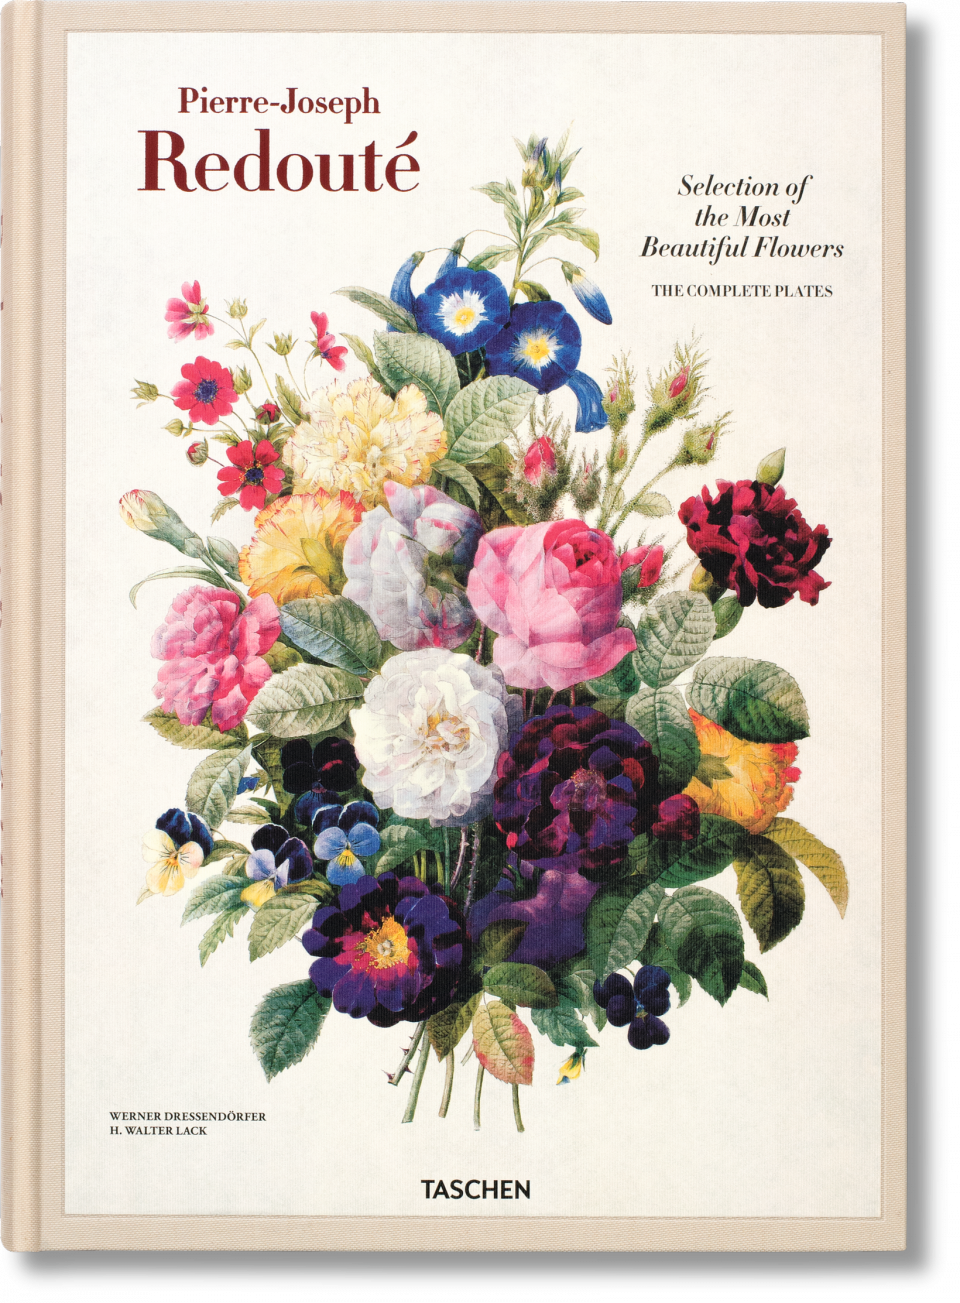 Redouté. Selection of the Most Beautiful Flowers - TASCHEN Books